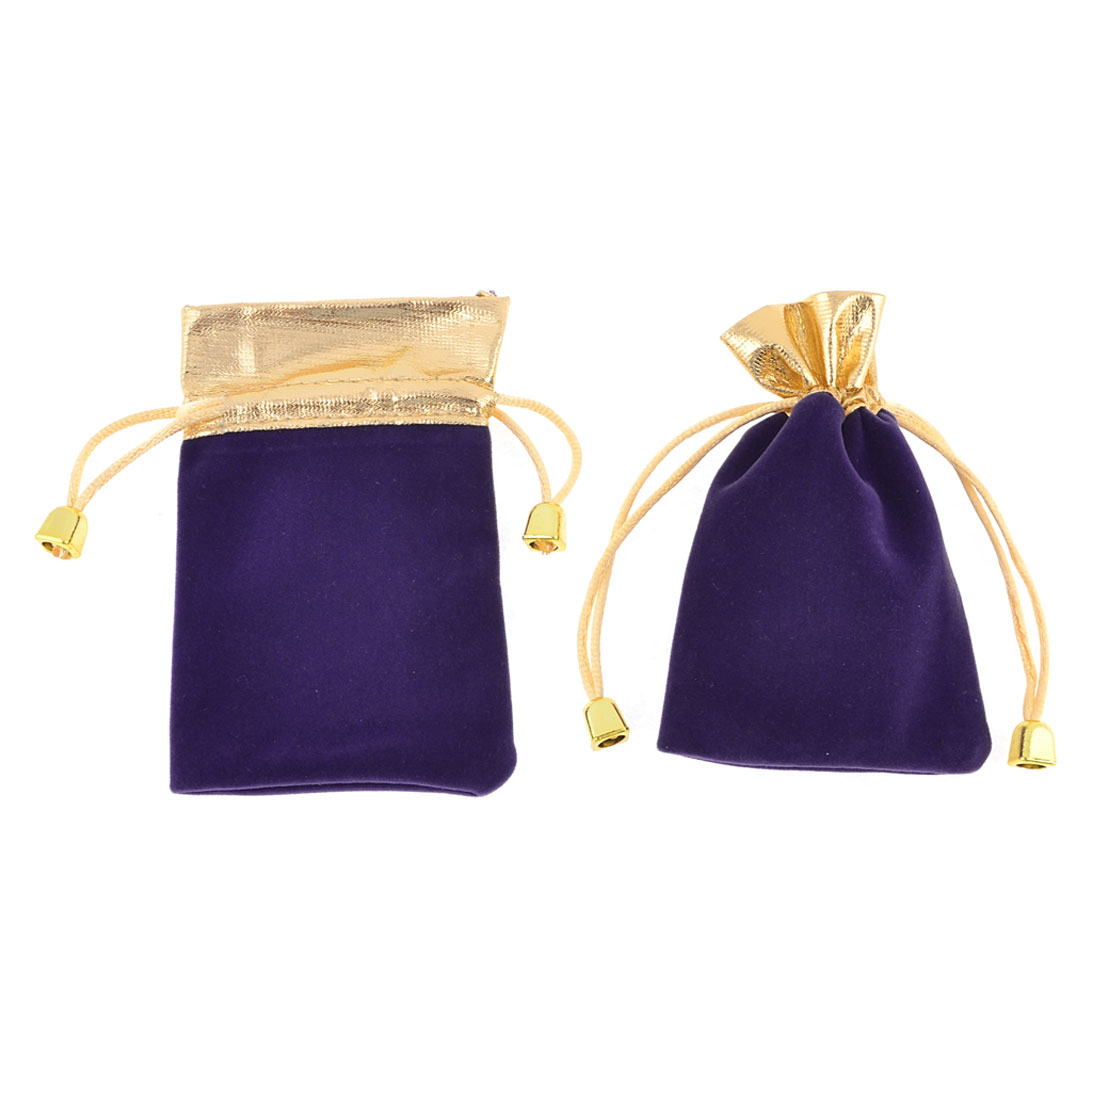 2 Pcs Purple Velvet Vertical Pull String Bag Pouch for Cell Phone MP3